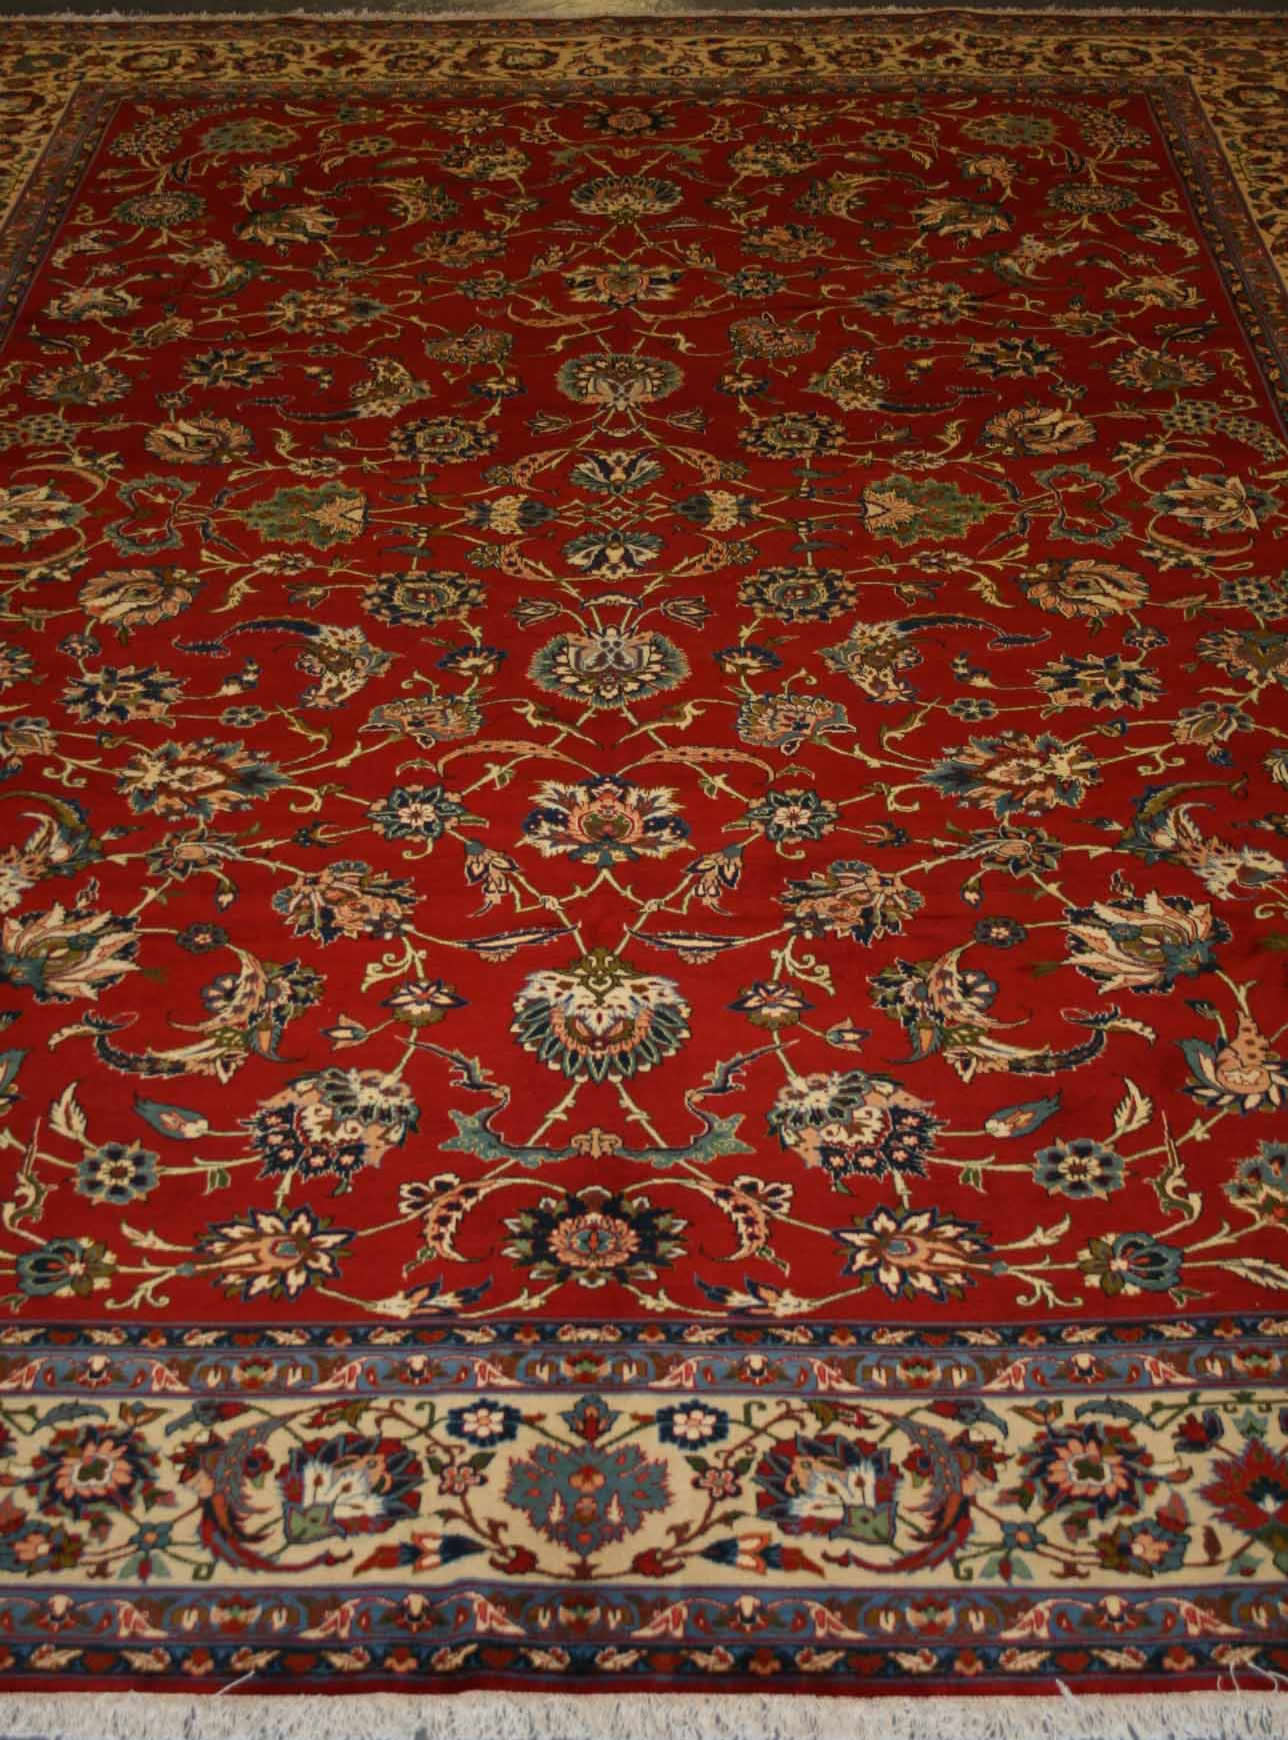 A typical example of a Najafabad rug